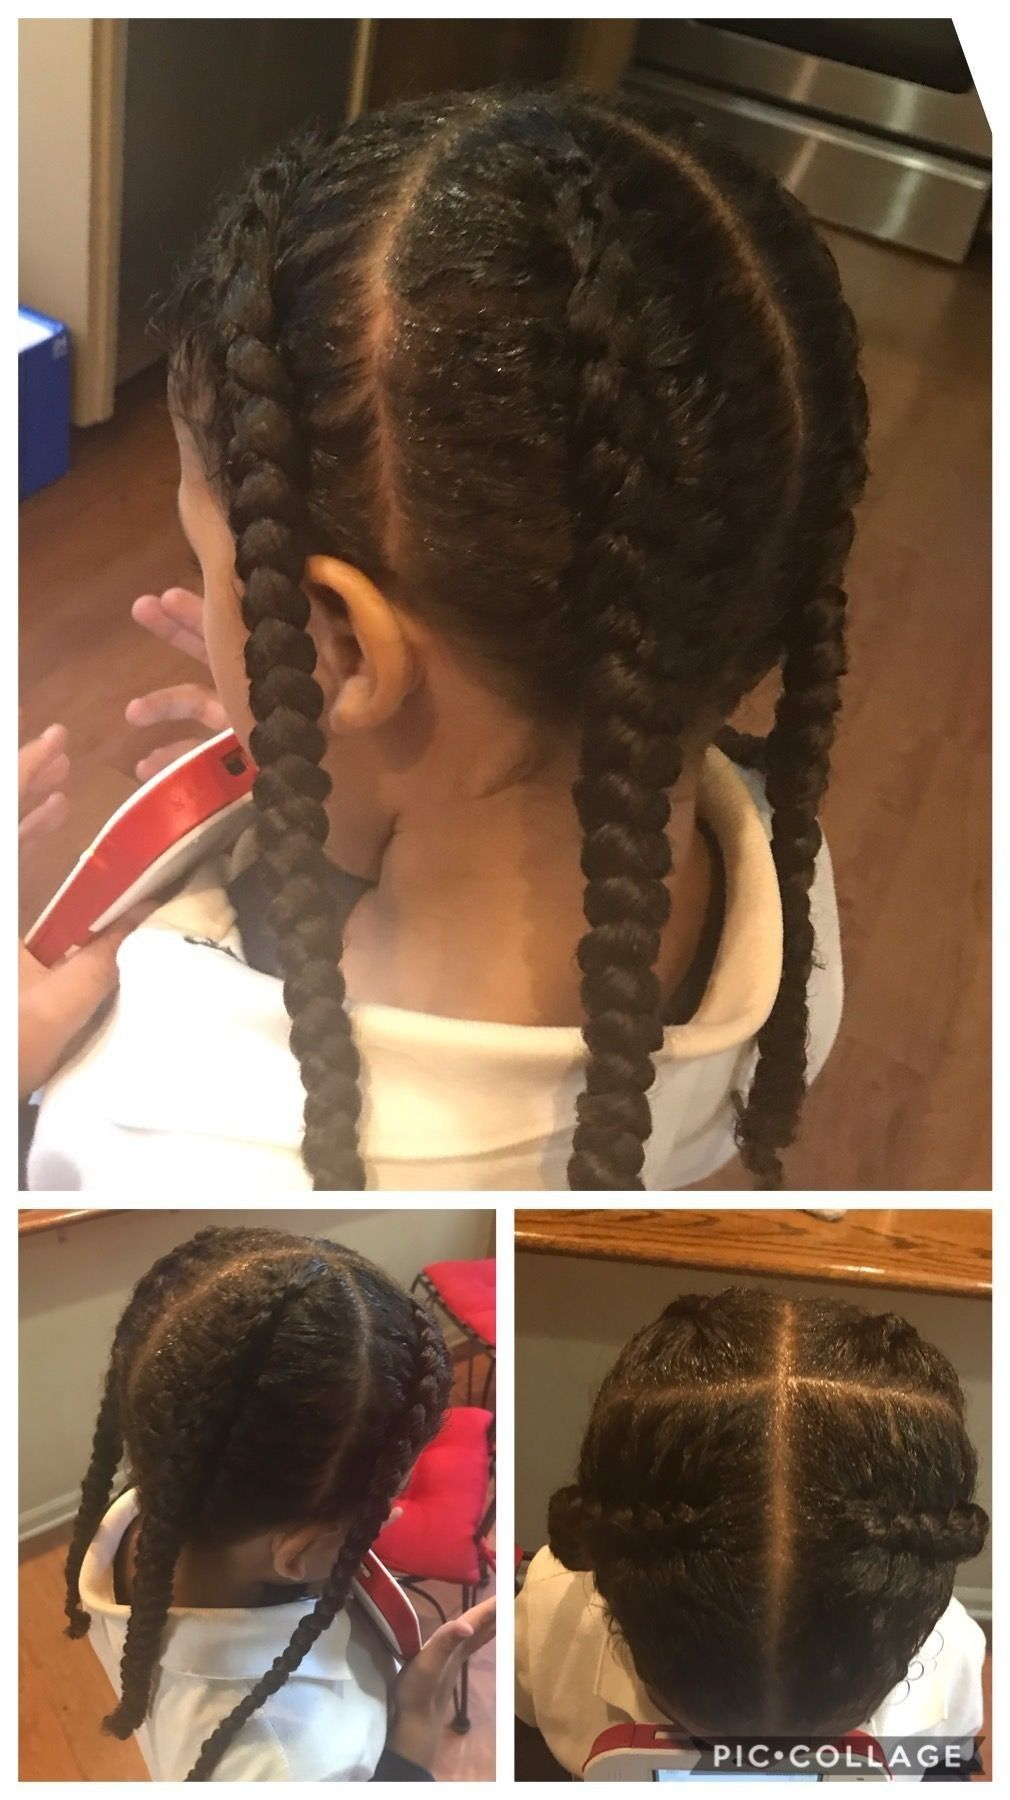 Pin By Fashionmo On Hairstyles Braids For Boys Boys Long Hairstyles Boy Hairstyles